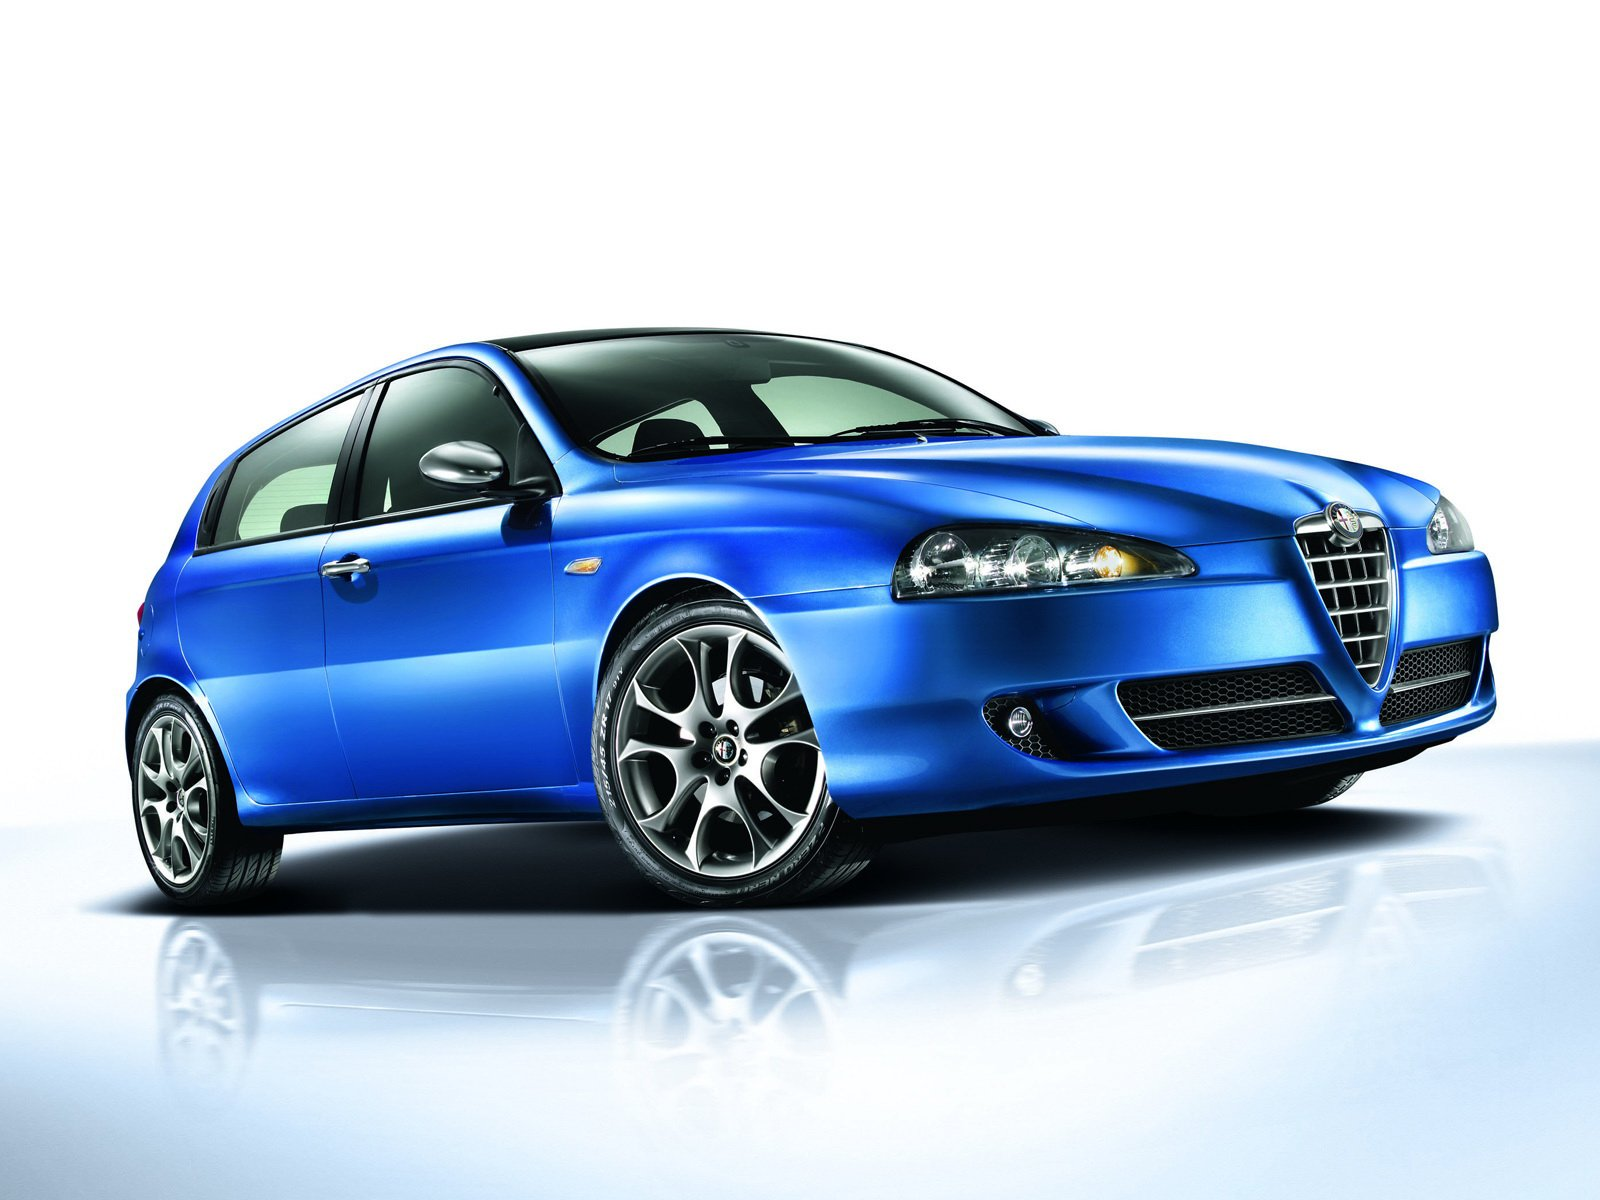 Alfa Romeo 147 Wallpaper And Background Image 1600x1200 Id 468603 Wallpaper Abyss